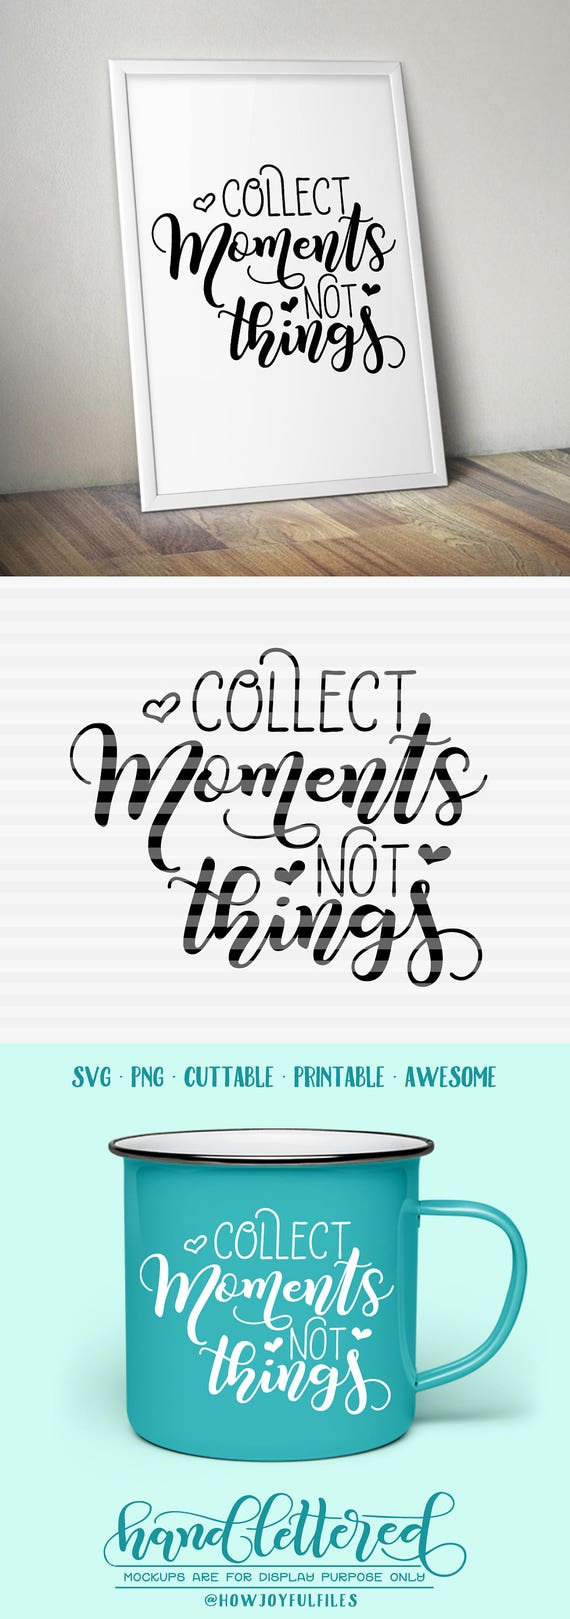 43+ Coolest Dude Ever – Awesome Dude – Svg – Pdf – Dxf – Hand Drawn Lettered Cut File – Graphic Overlay Crafter Files